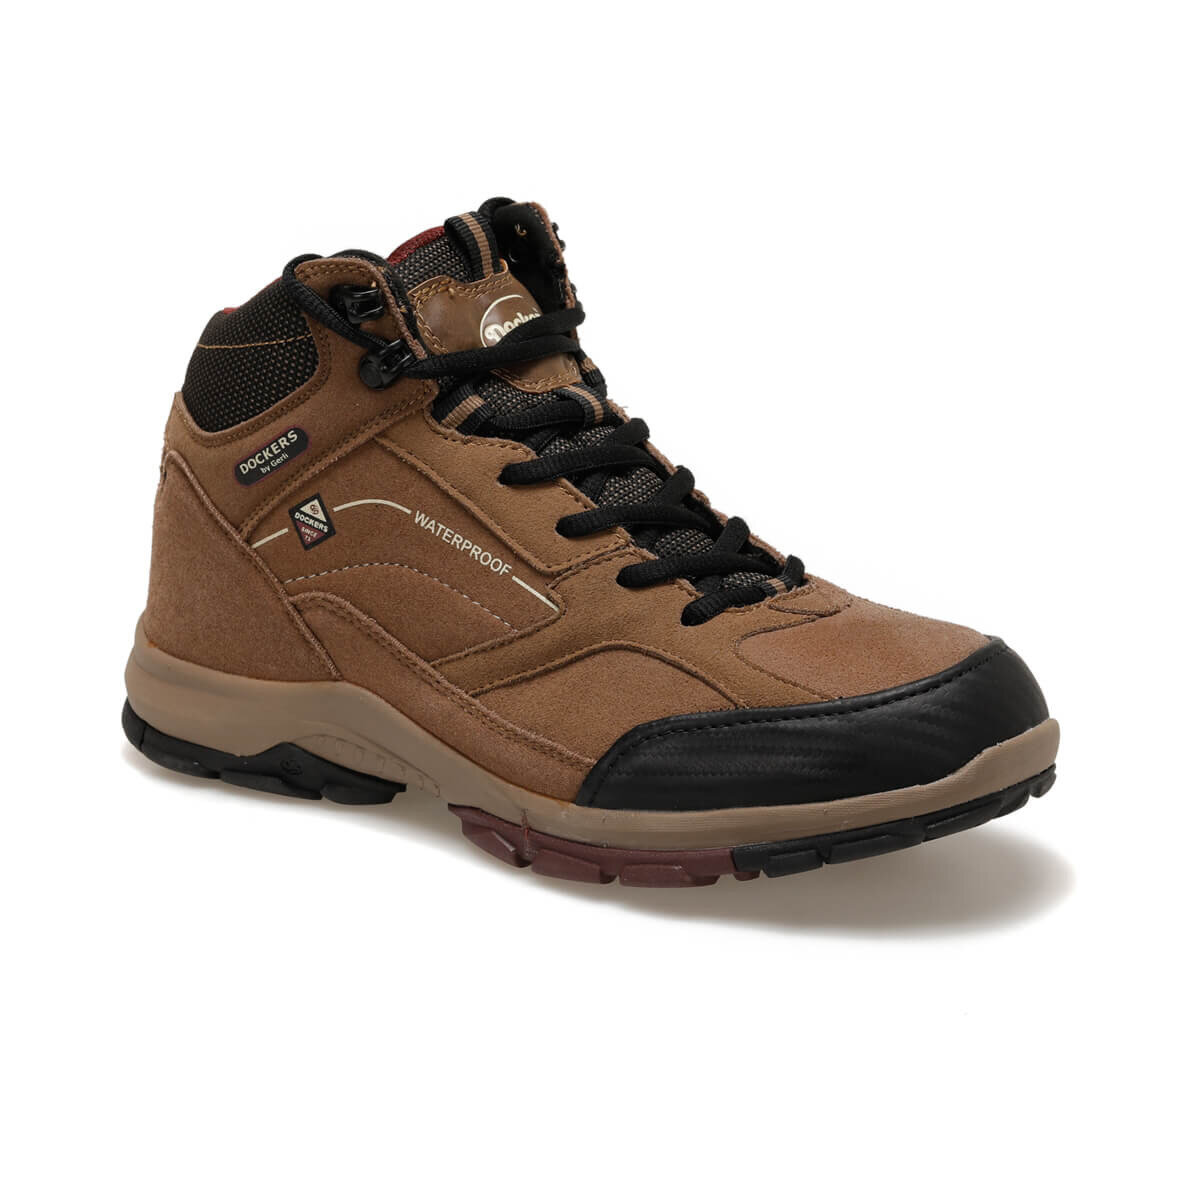 FLO 223593 Sand Color Men Boots By Dockers The Gerle